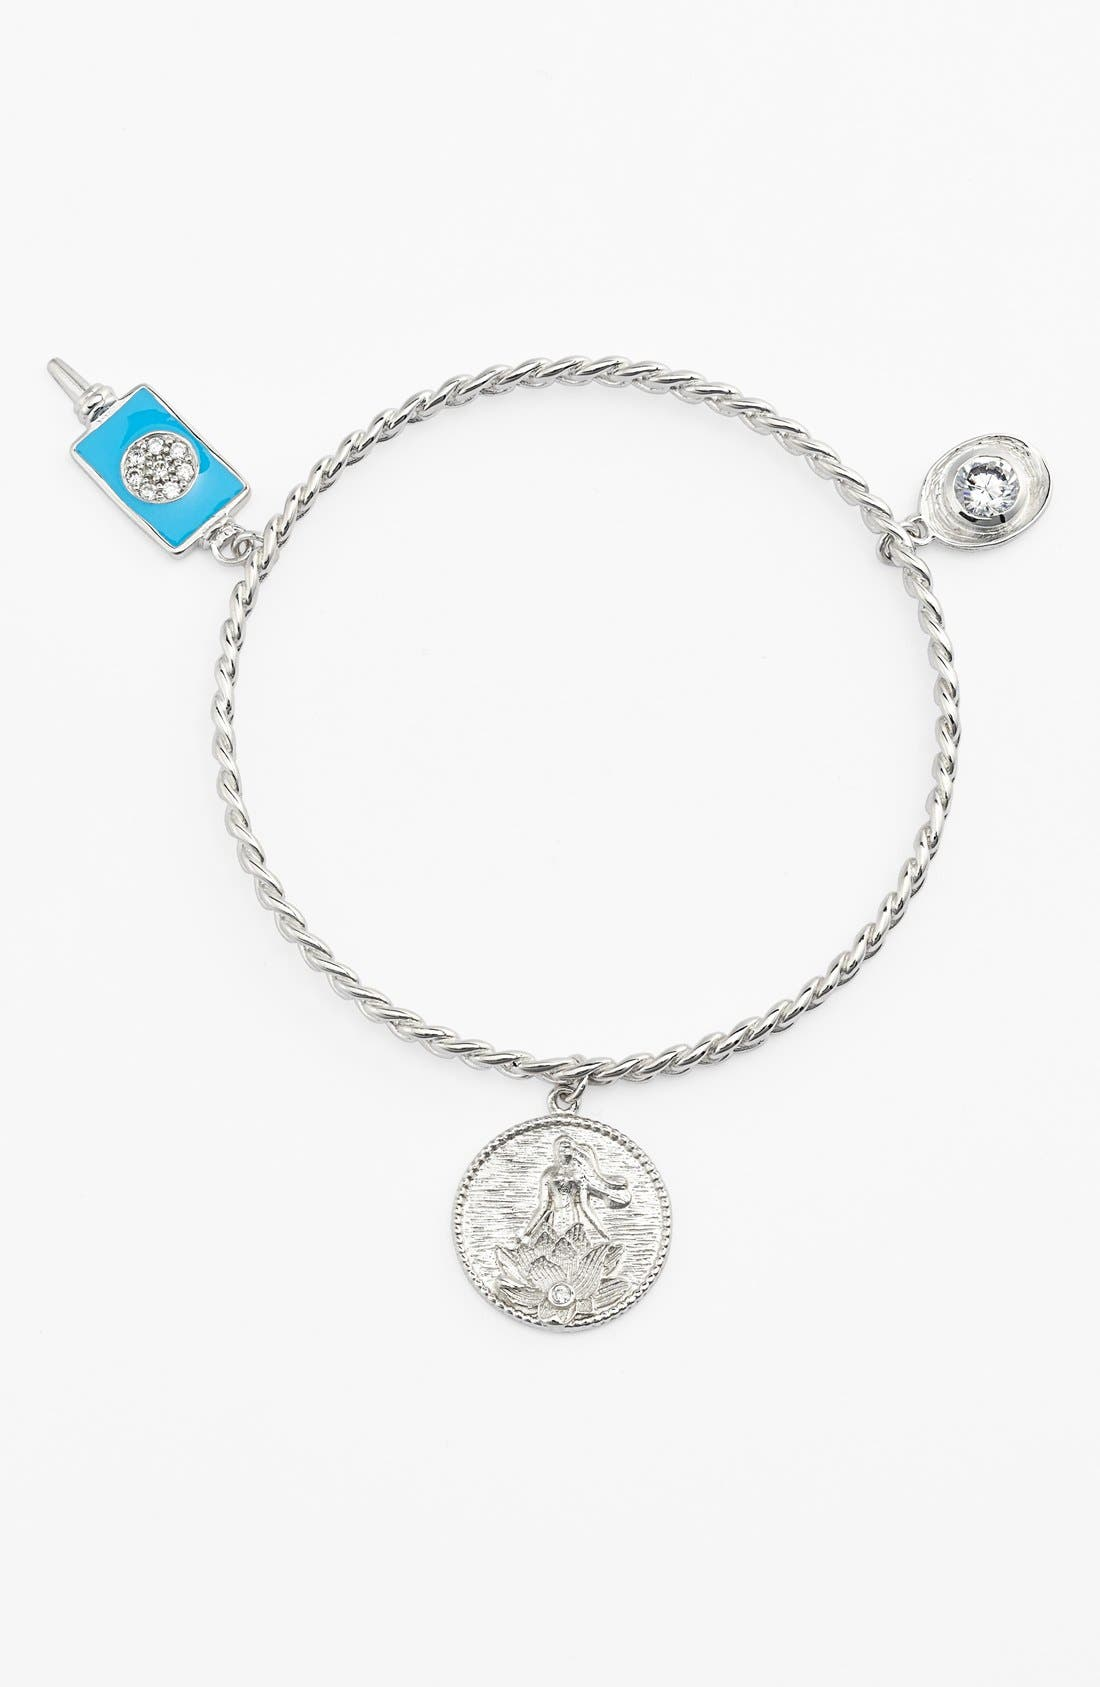 Main Image - Melinda Maria 'Goddess of Good Fortune' Charm Bangle